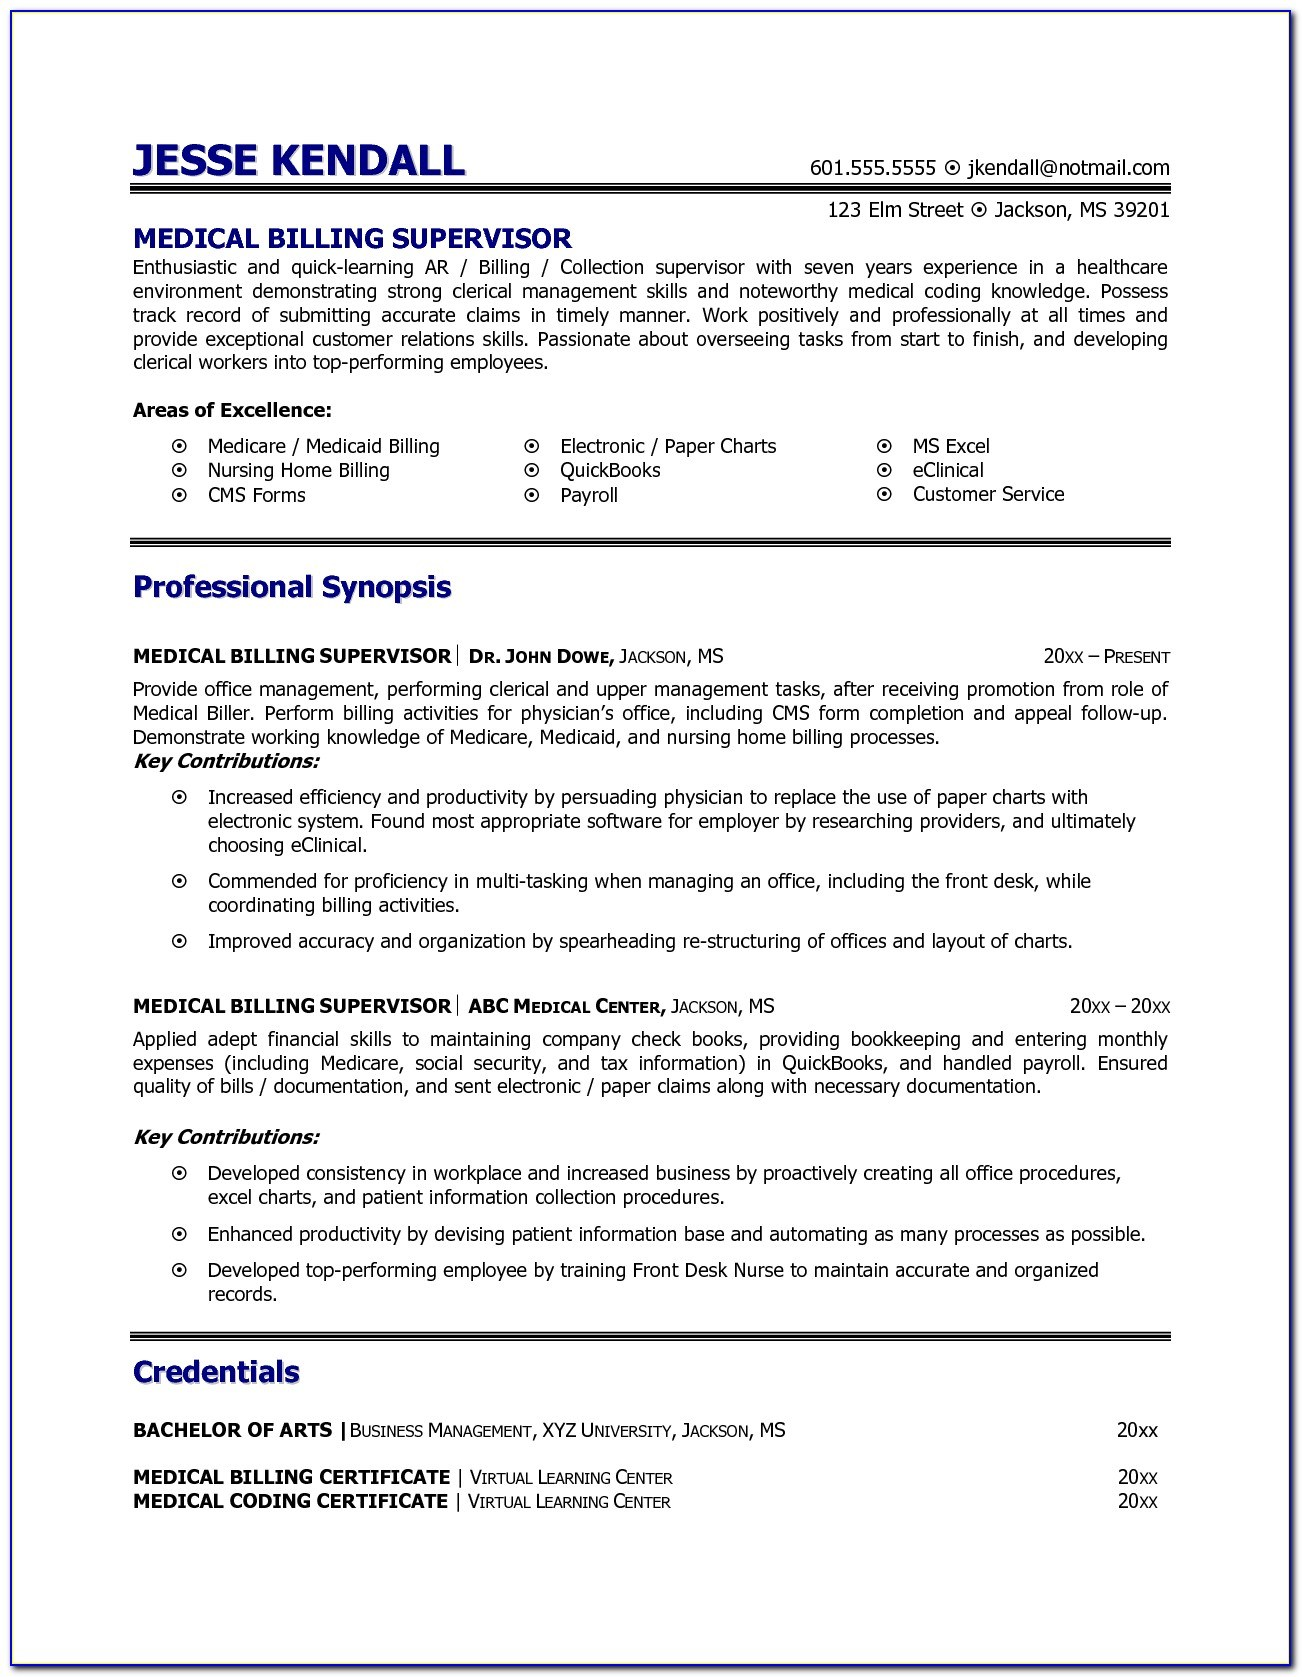 resume examples for medical billing and coding vincegray2014 say pharmacy assistant Resume Medical Coding Resume Examples